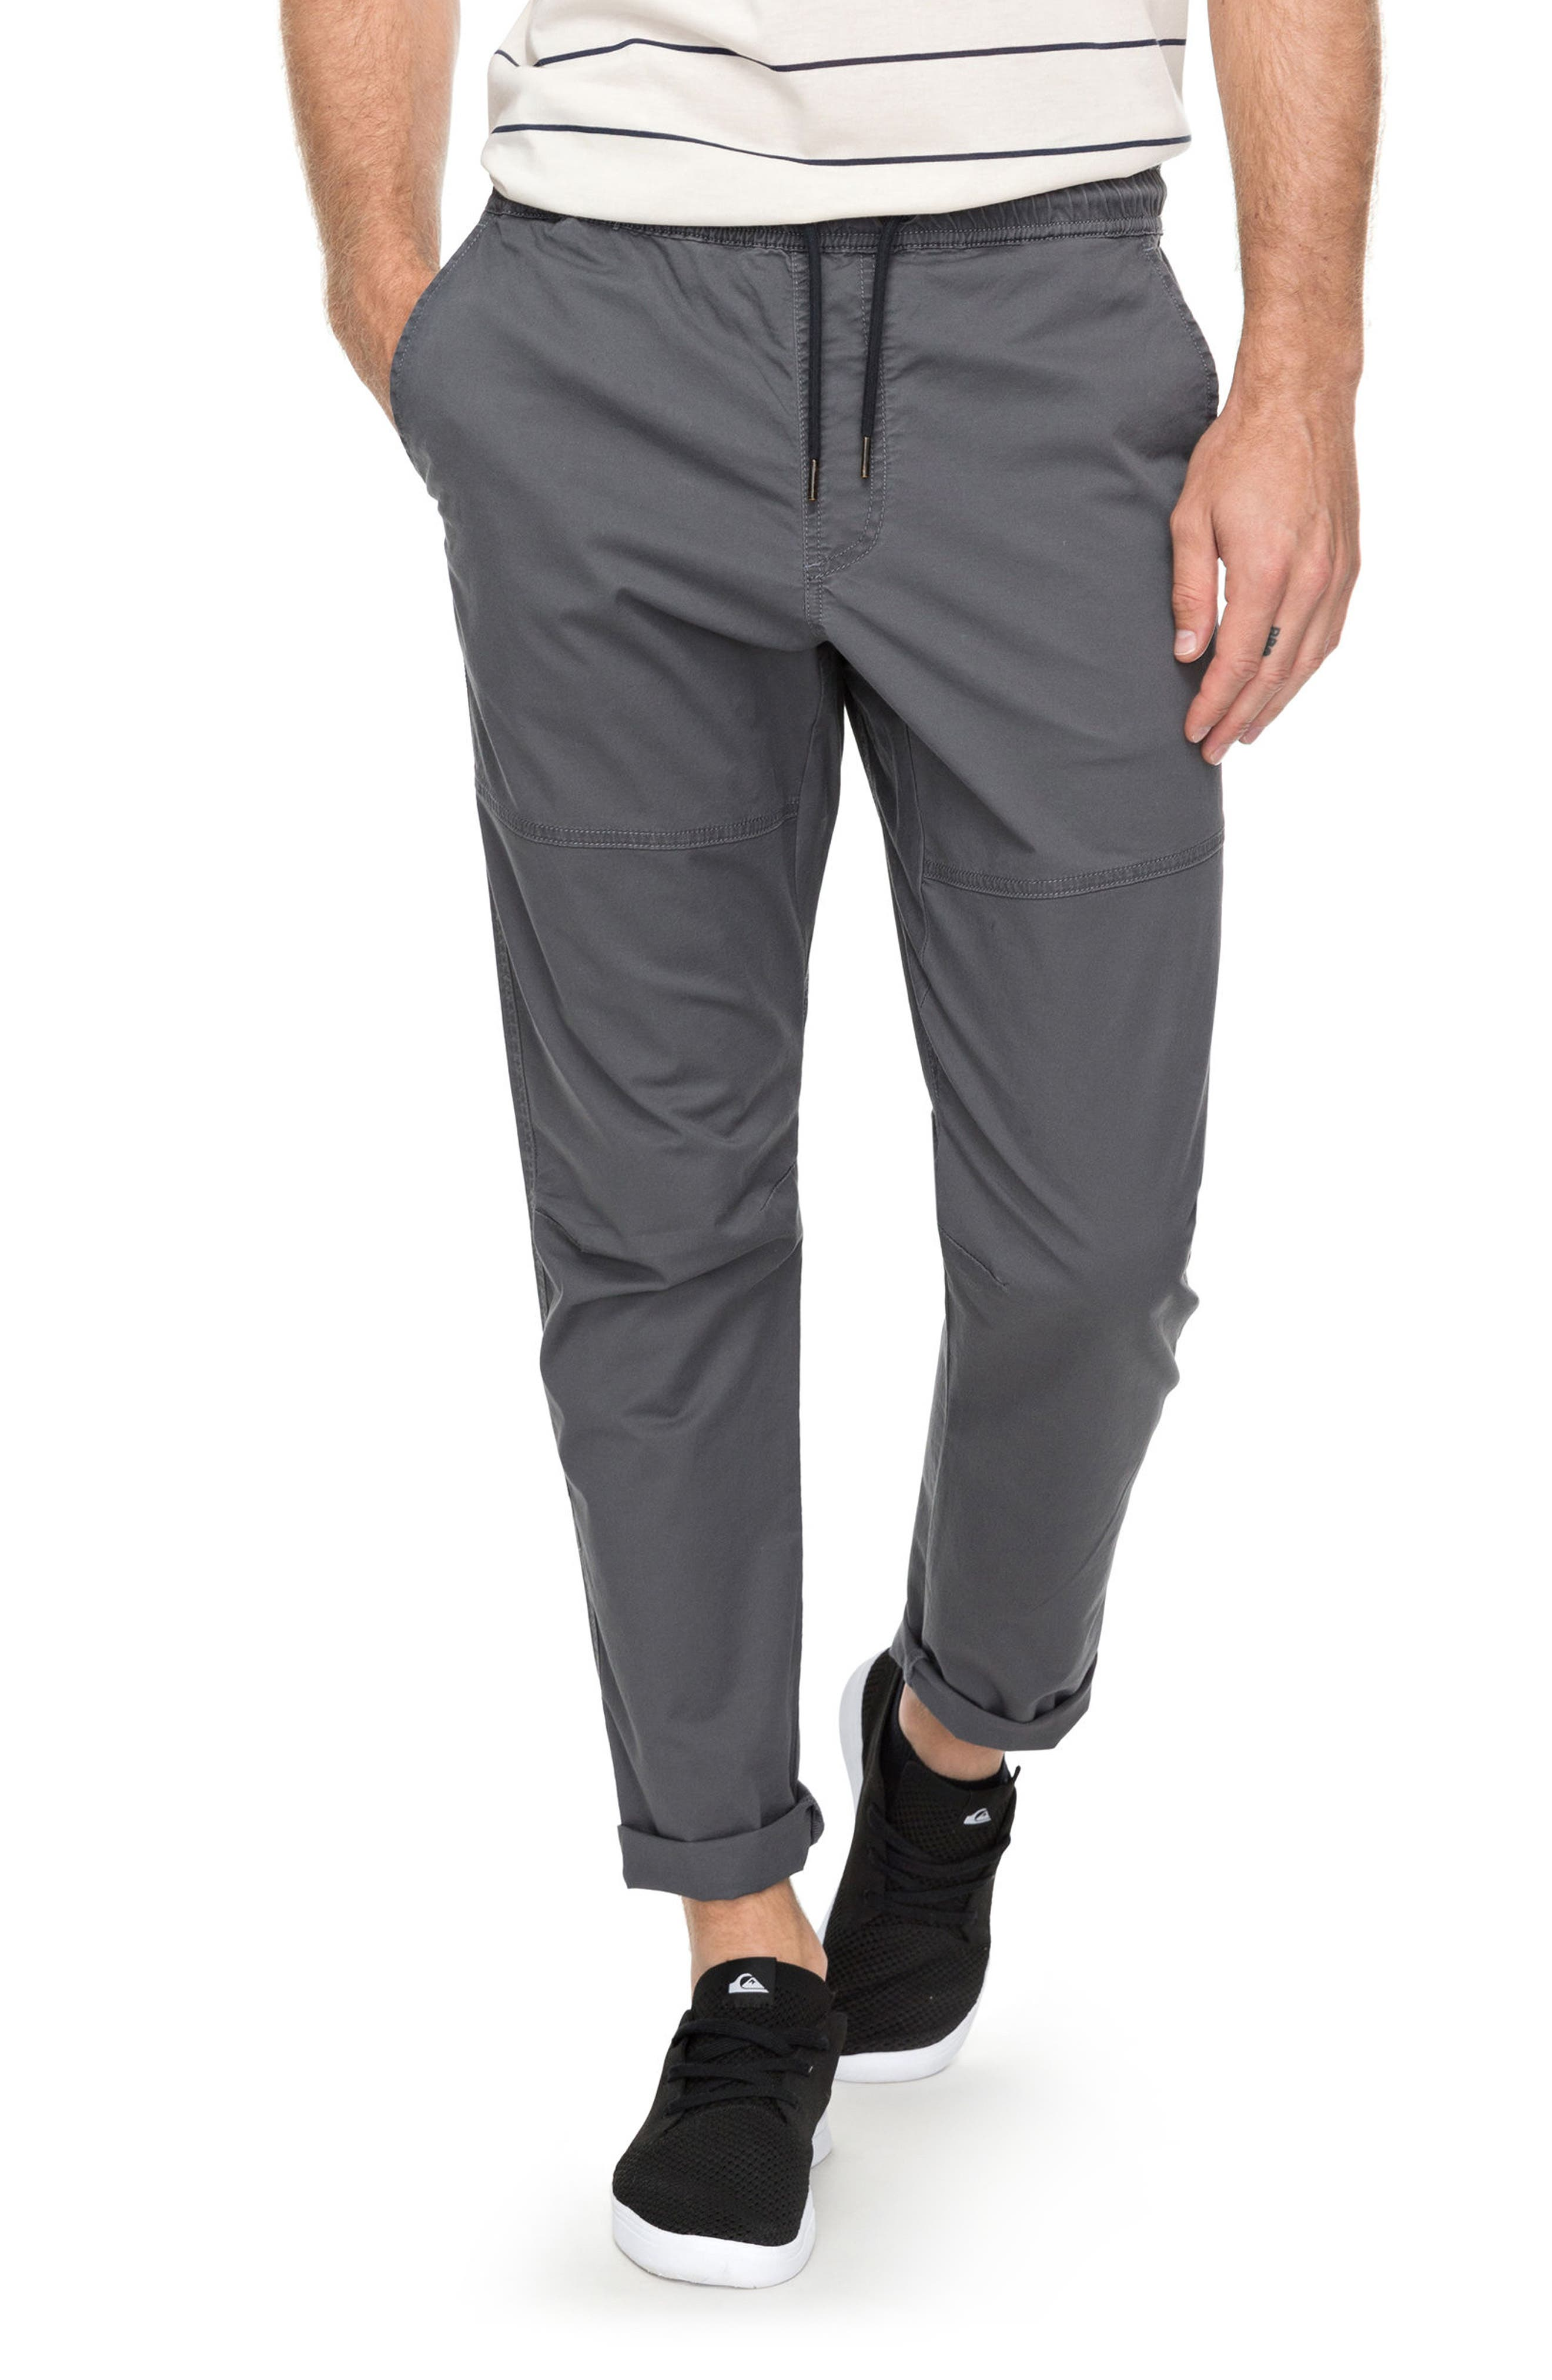 Foxoy Twill Pants,                         Main,                         color, Iron Gate